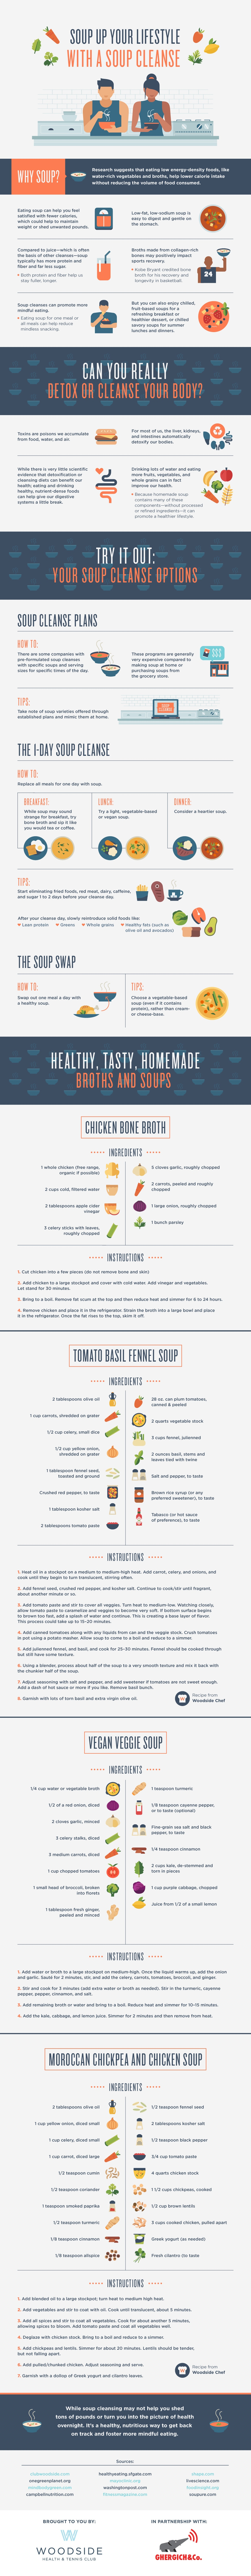 Benefits Of A Soup Cleanse - Infographic